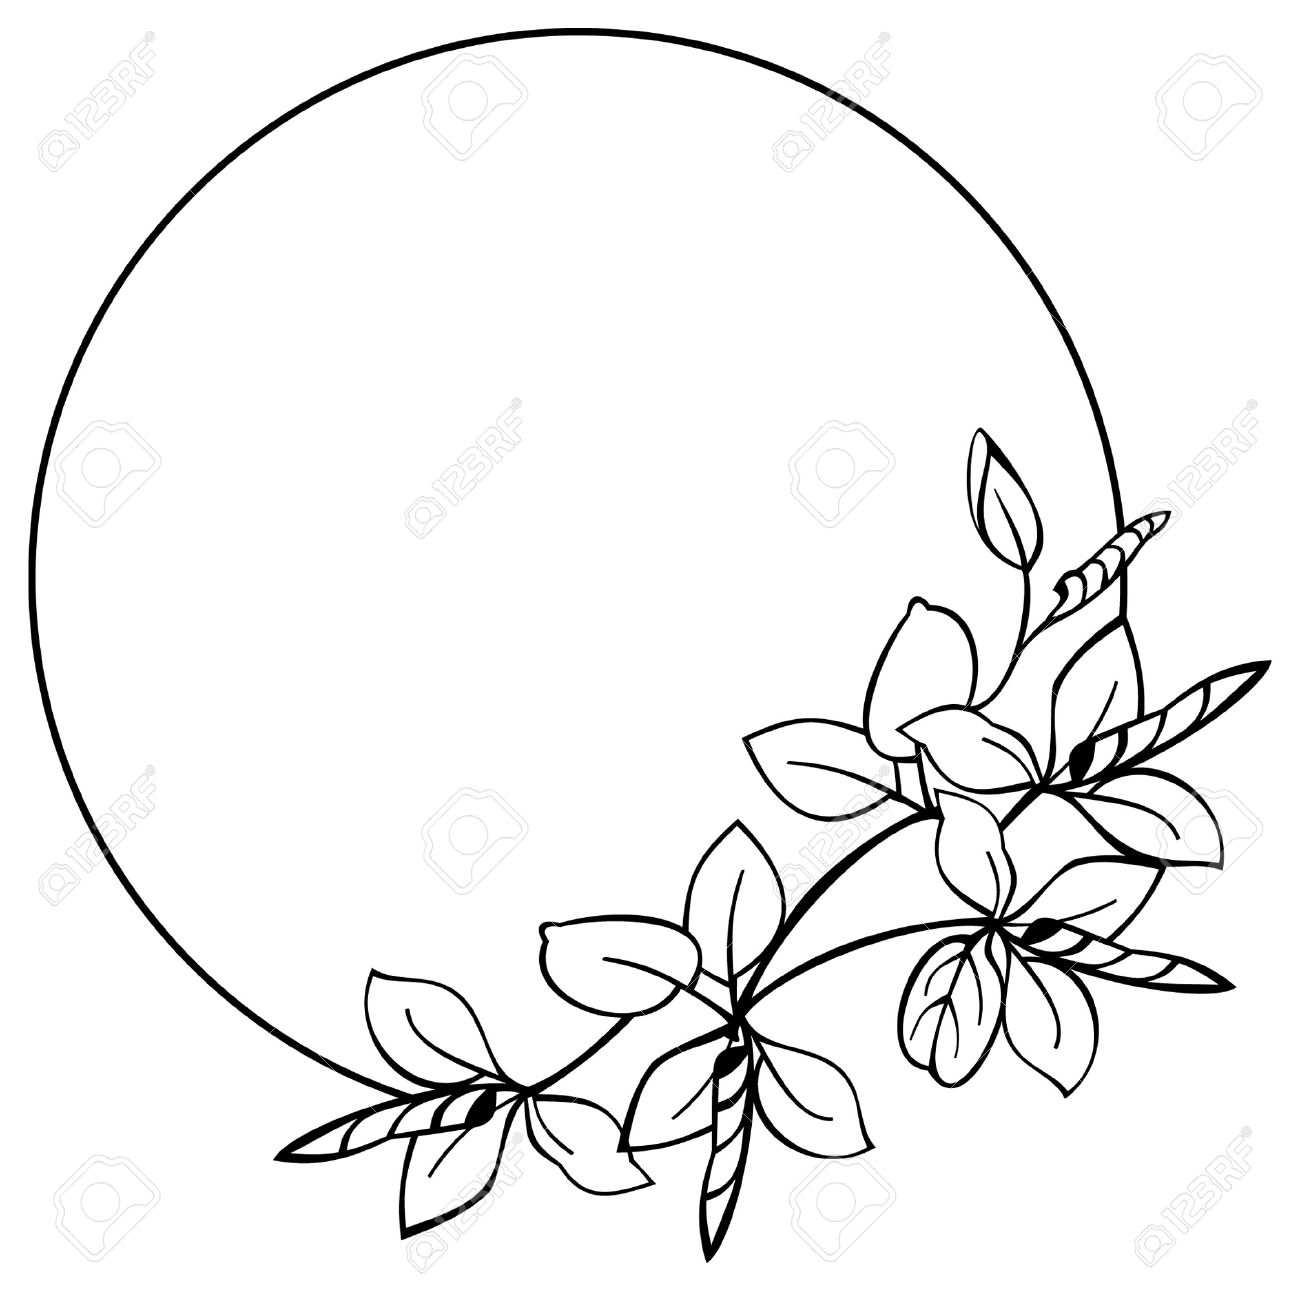 hight resolution of round flower frame stock vector 9056361